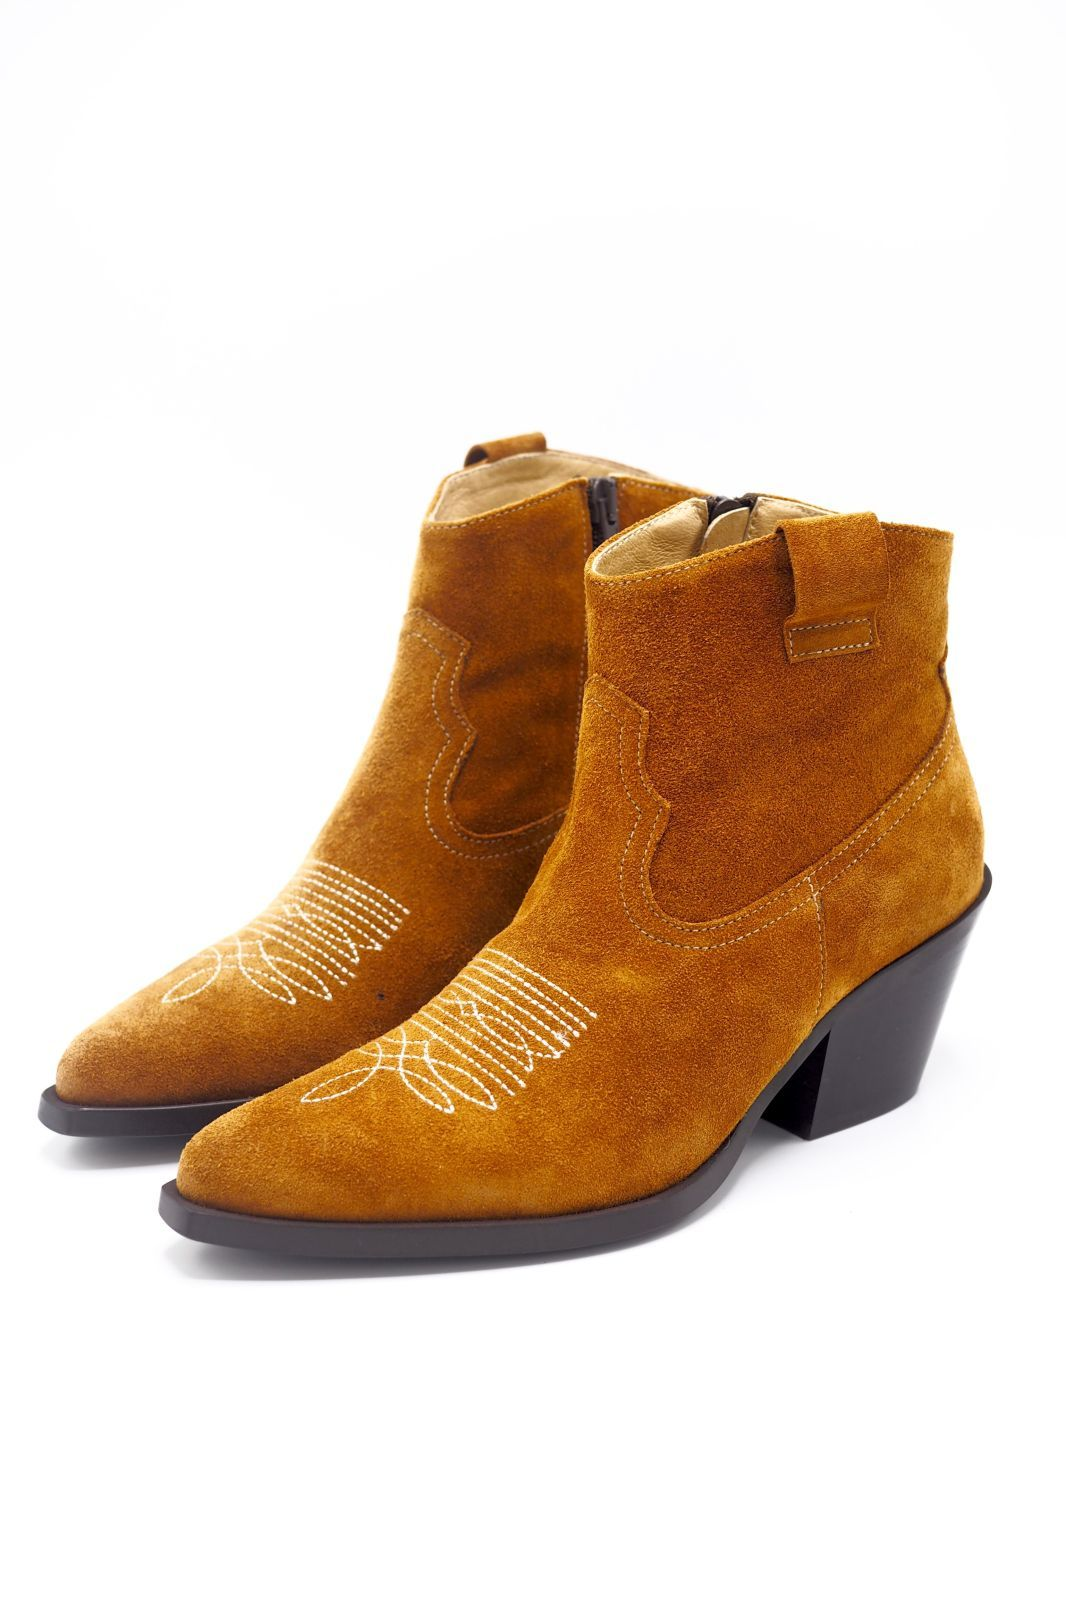 Exit boots Naturel femmes (EX-Santiag - SUBYME Tiag pointue cognac) - Marine | Much more than shoes